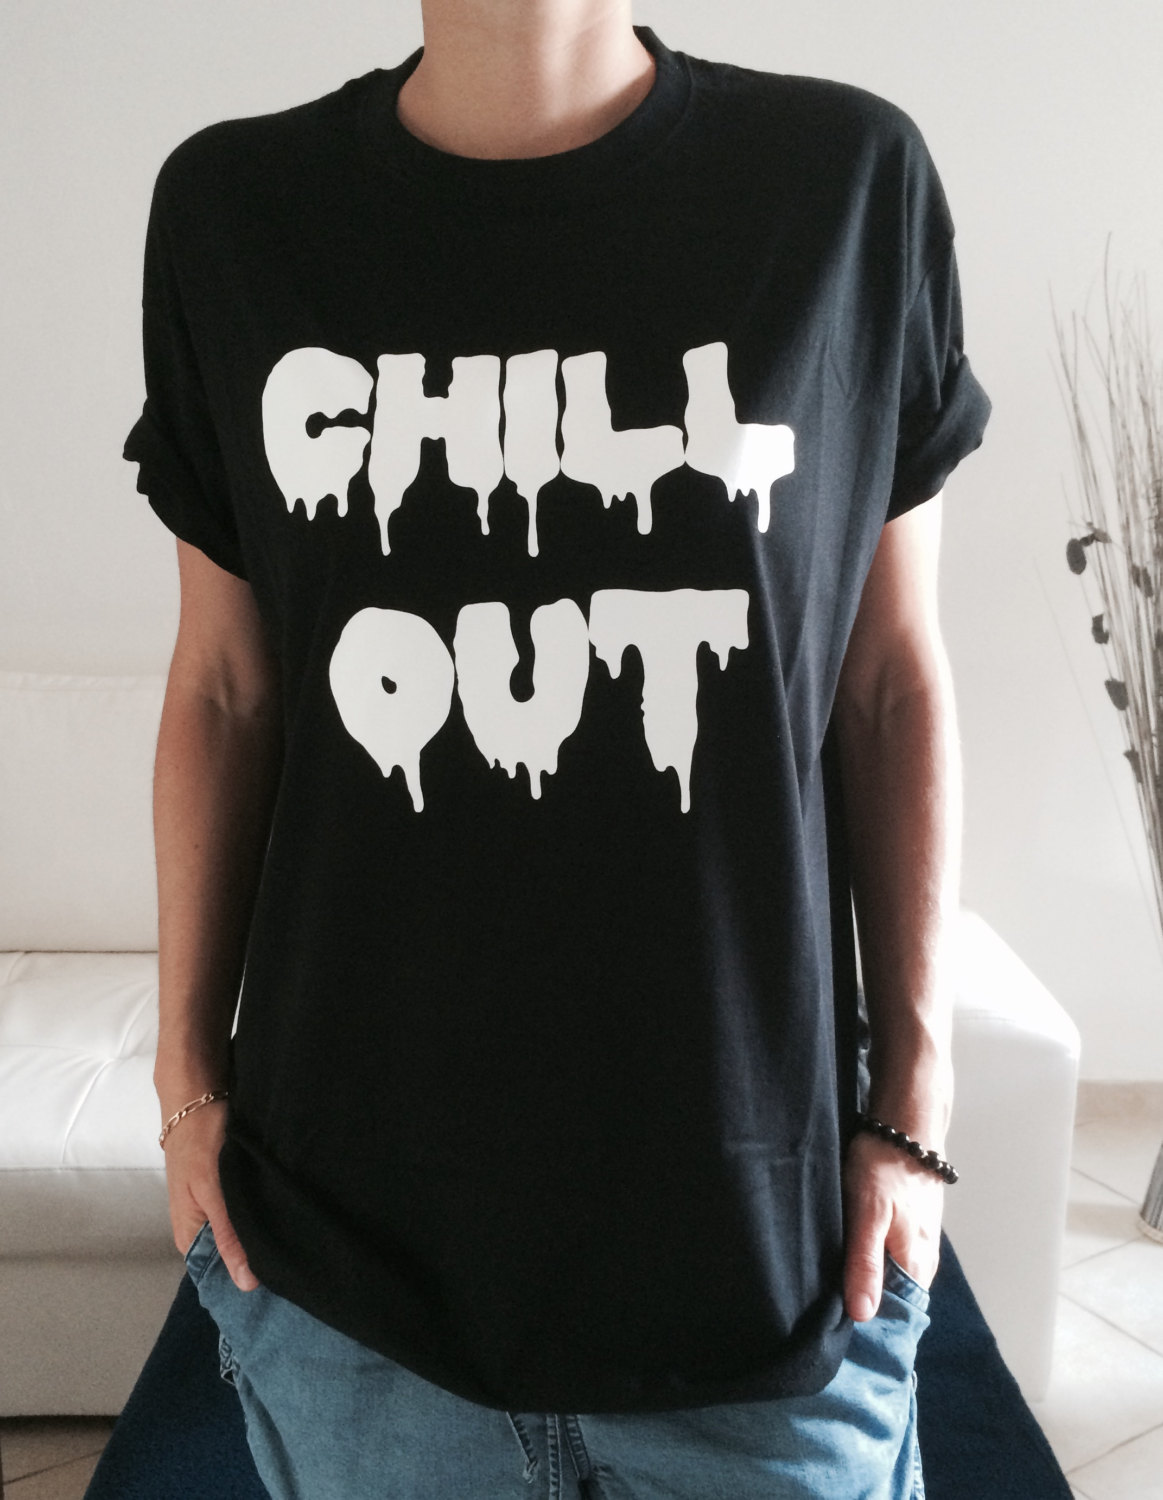 chill out t shirt grunge tumblr blogger hipster punk